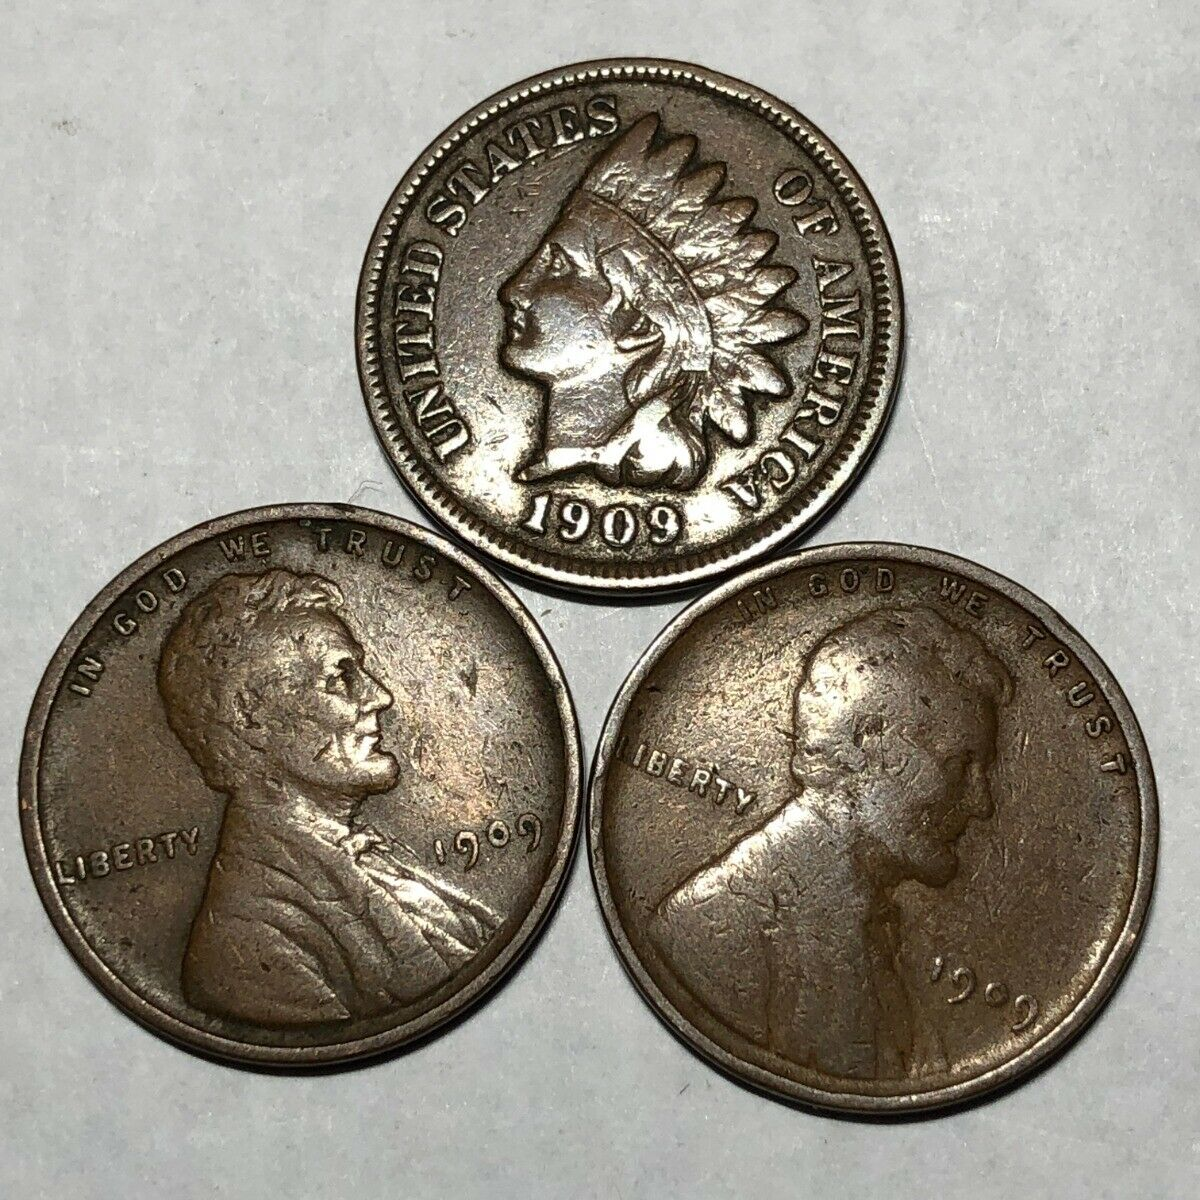 THREE FINE Cents 1909 Indian, 1909 Lincoln Wheat 1909-VDB Lincoln. k2 - $19.00